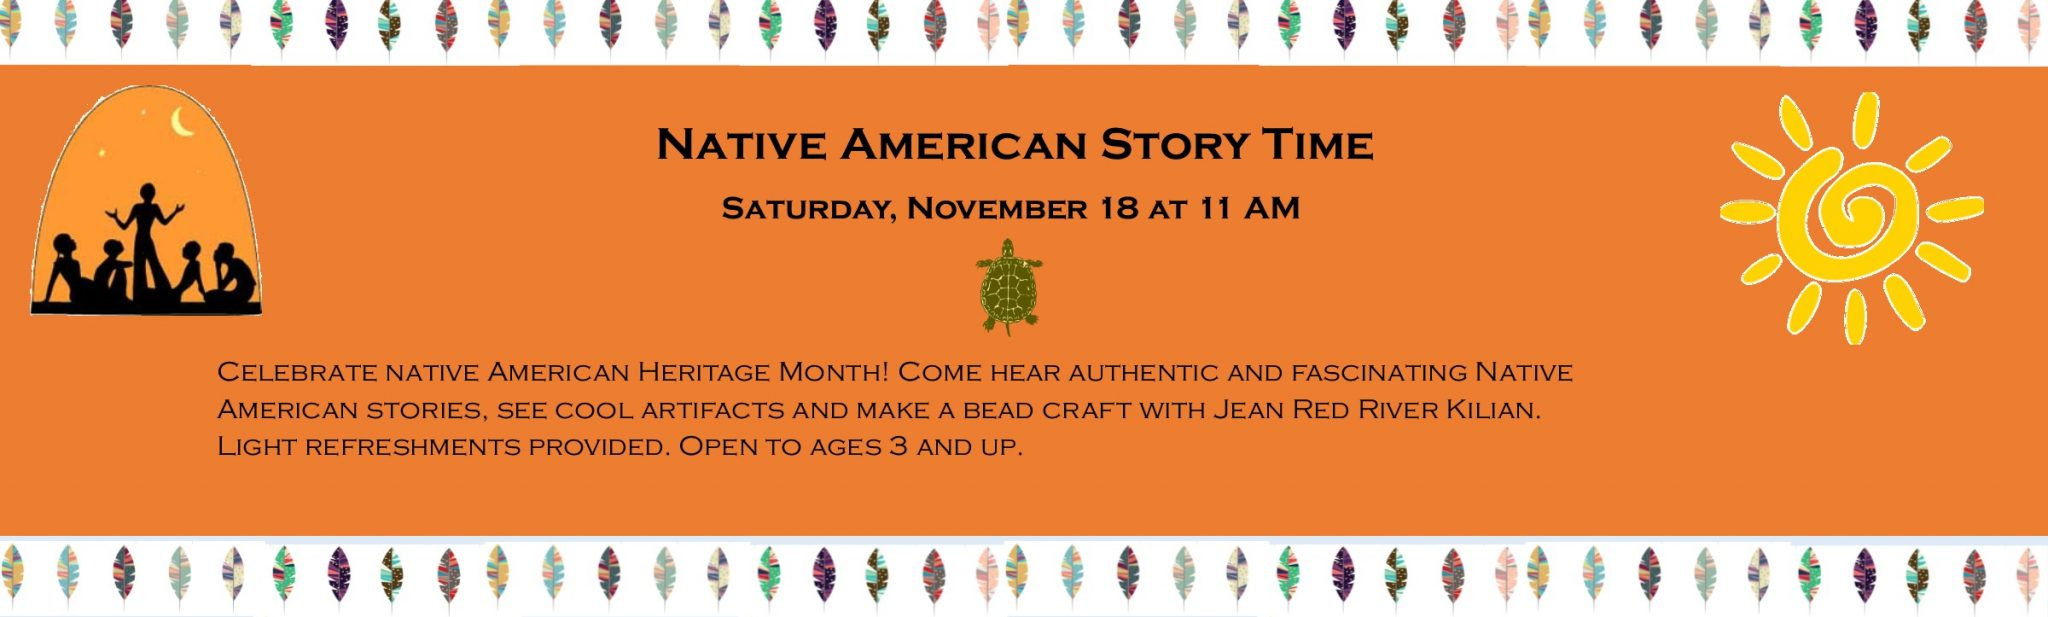 2017118 Native American Story Time